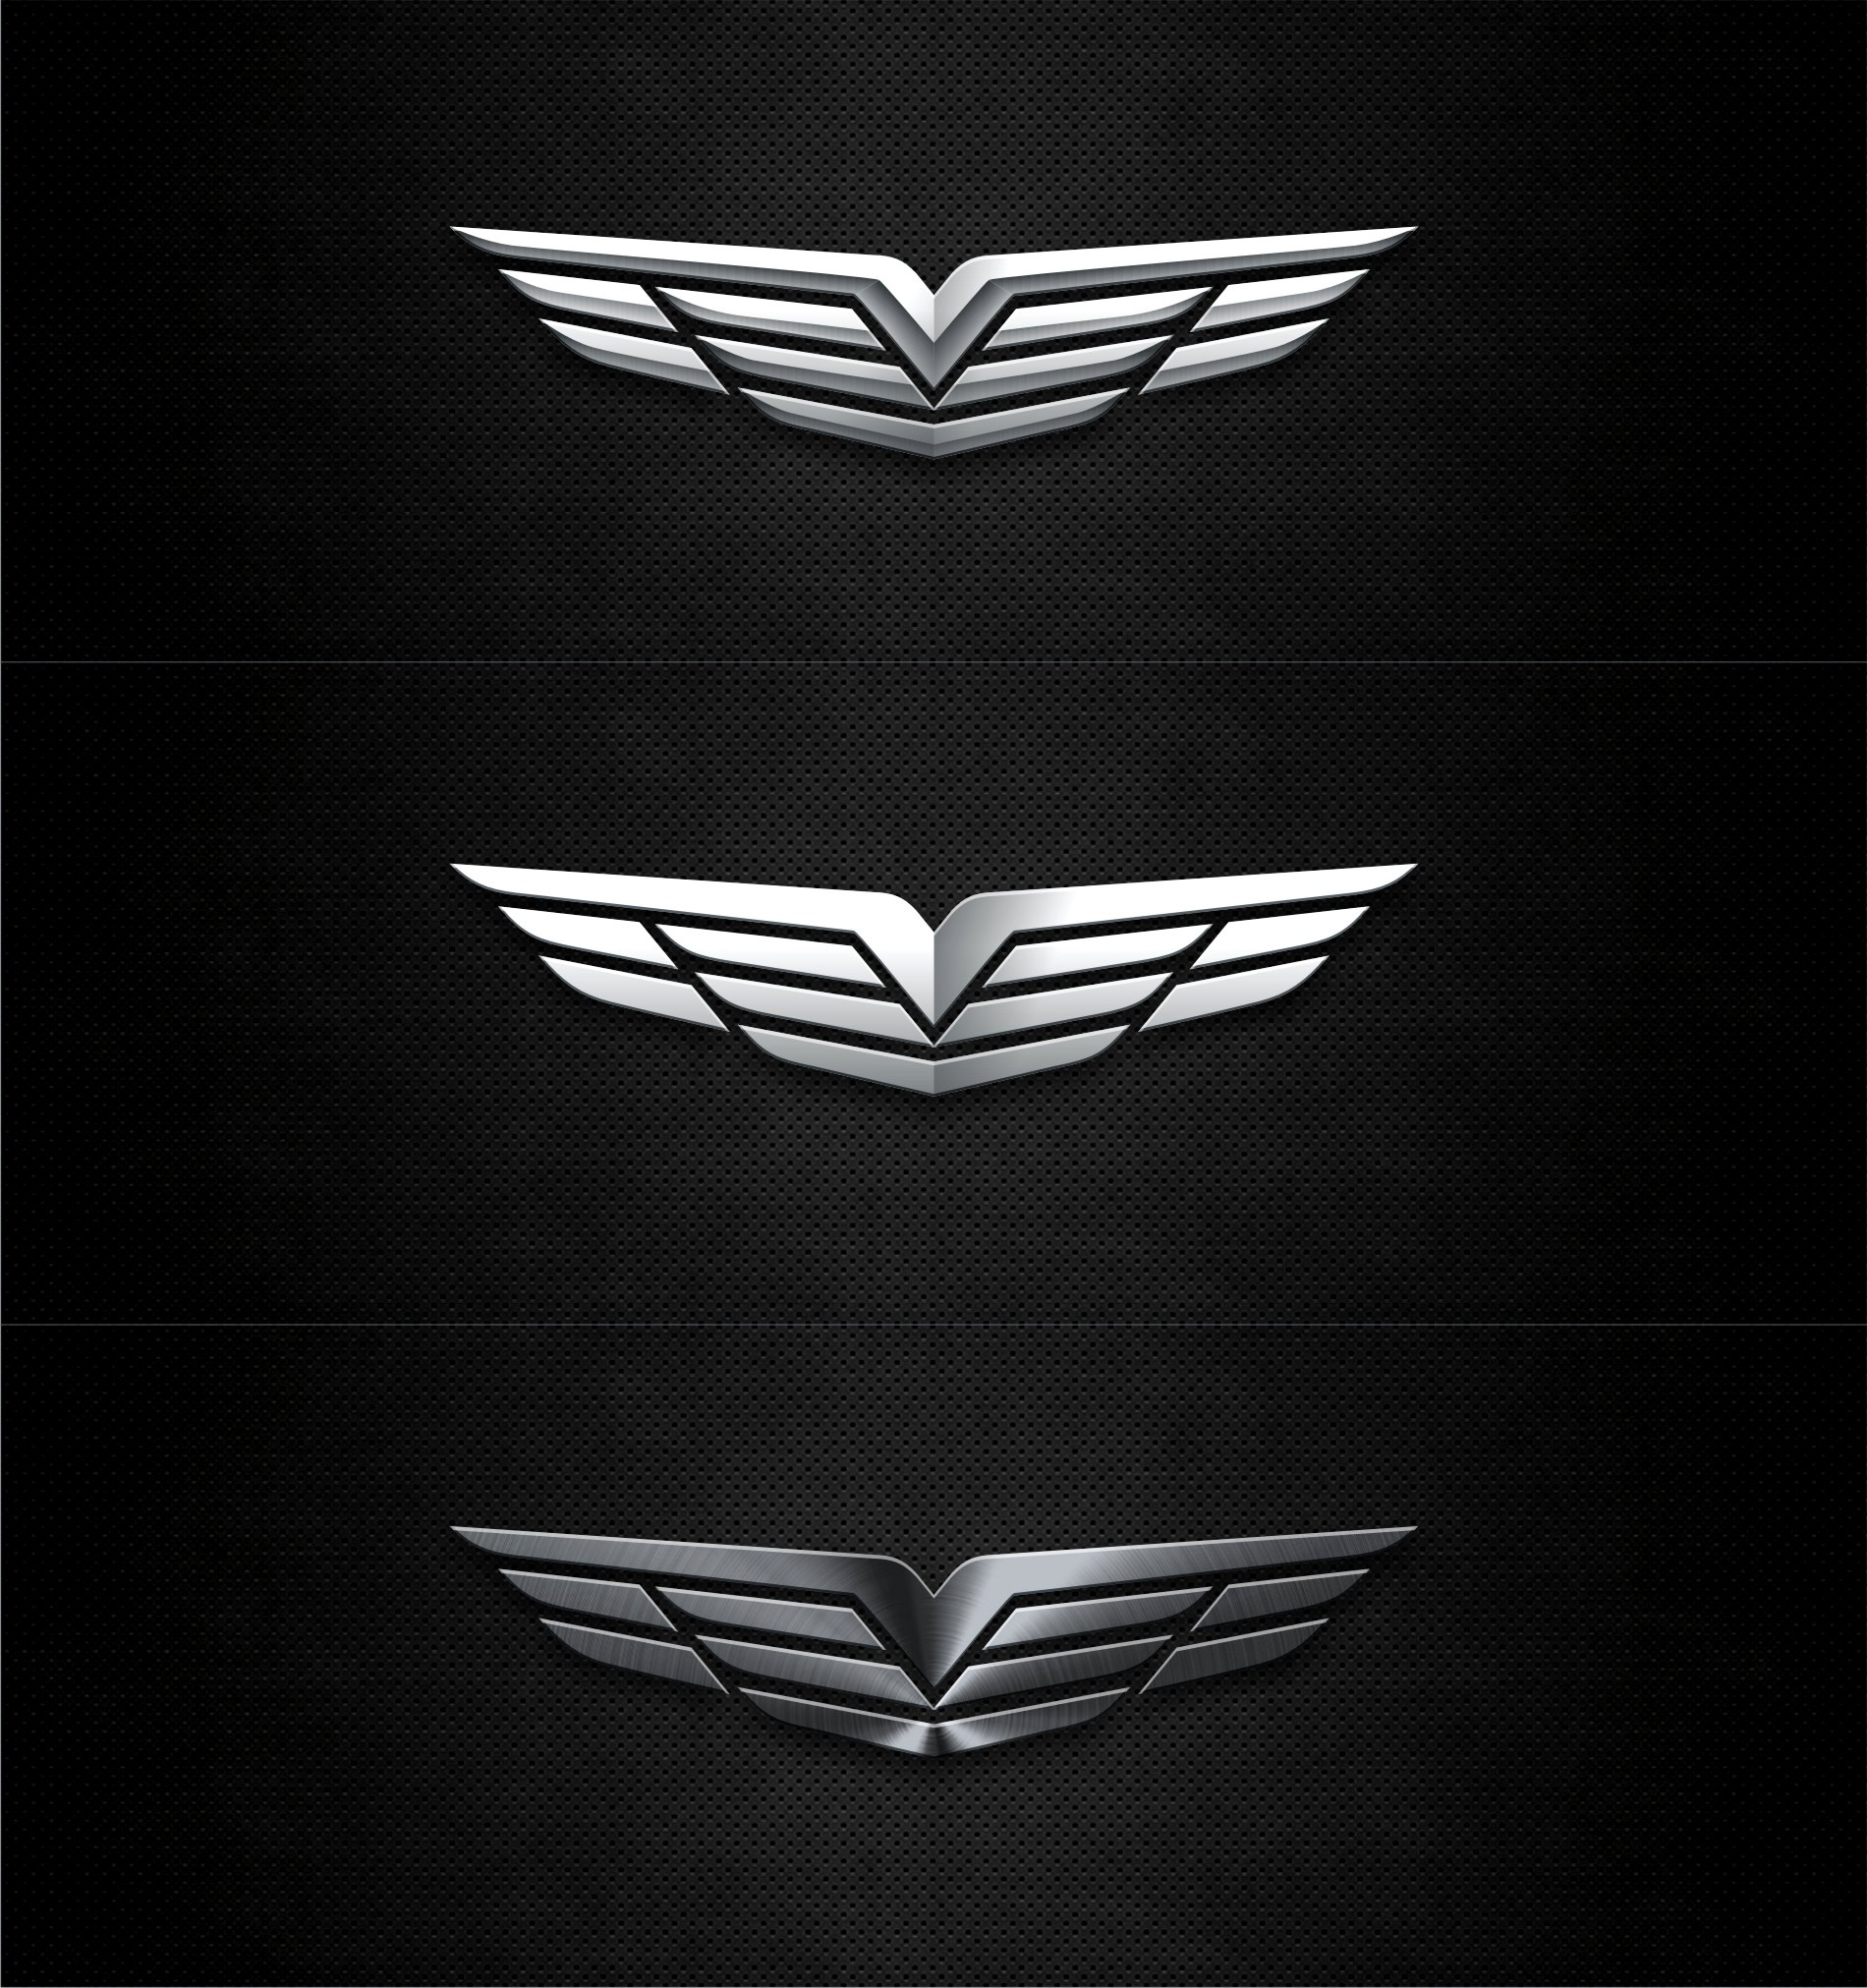 Logo Design with same AirPleasure Wings but other symbolises